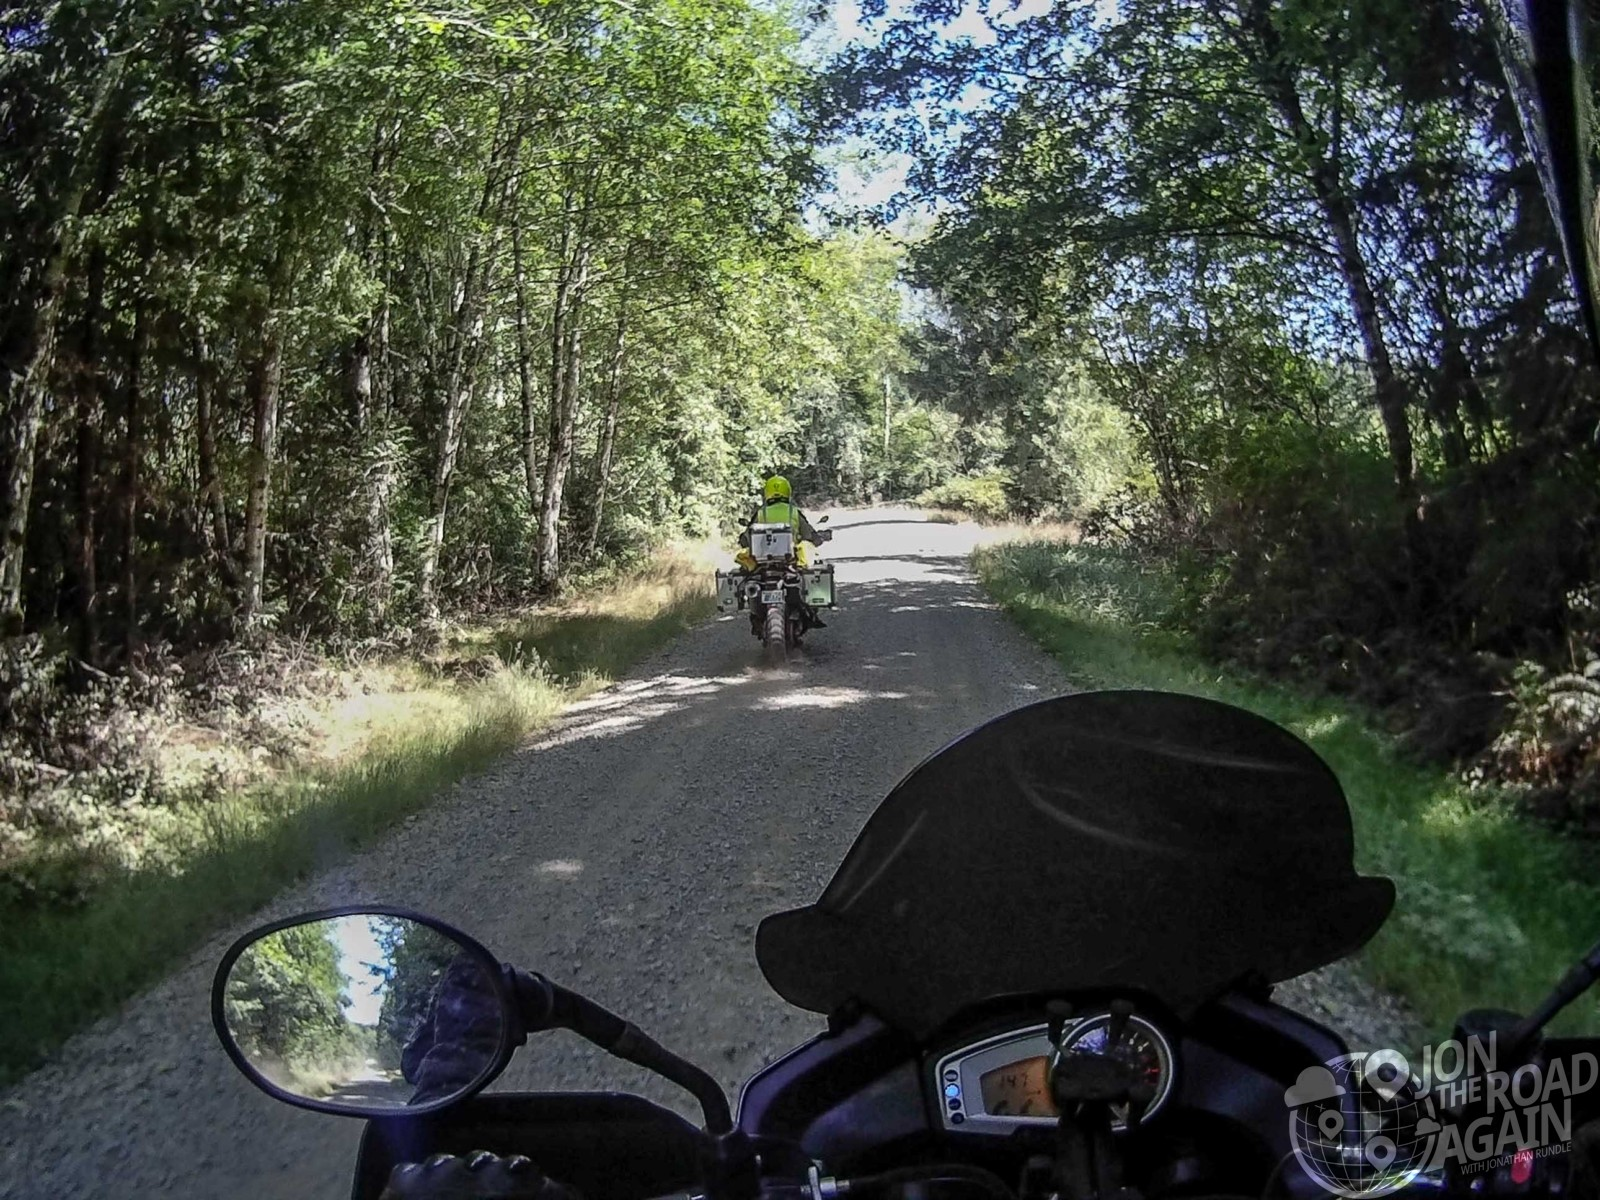 Riding off-road motorcycles on Olympic Peninsula